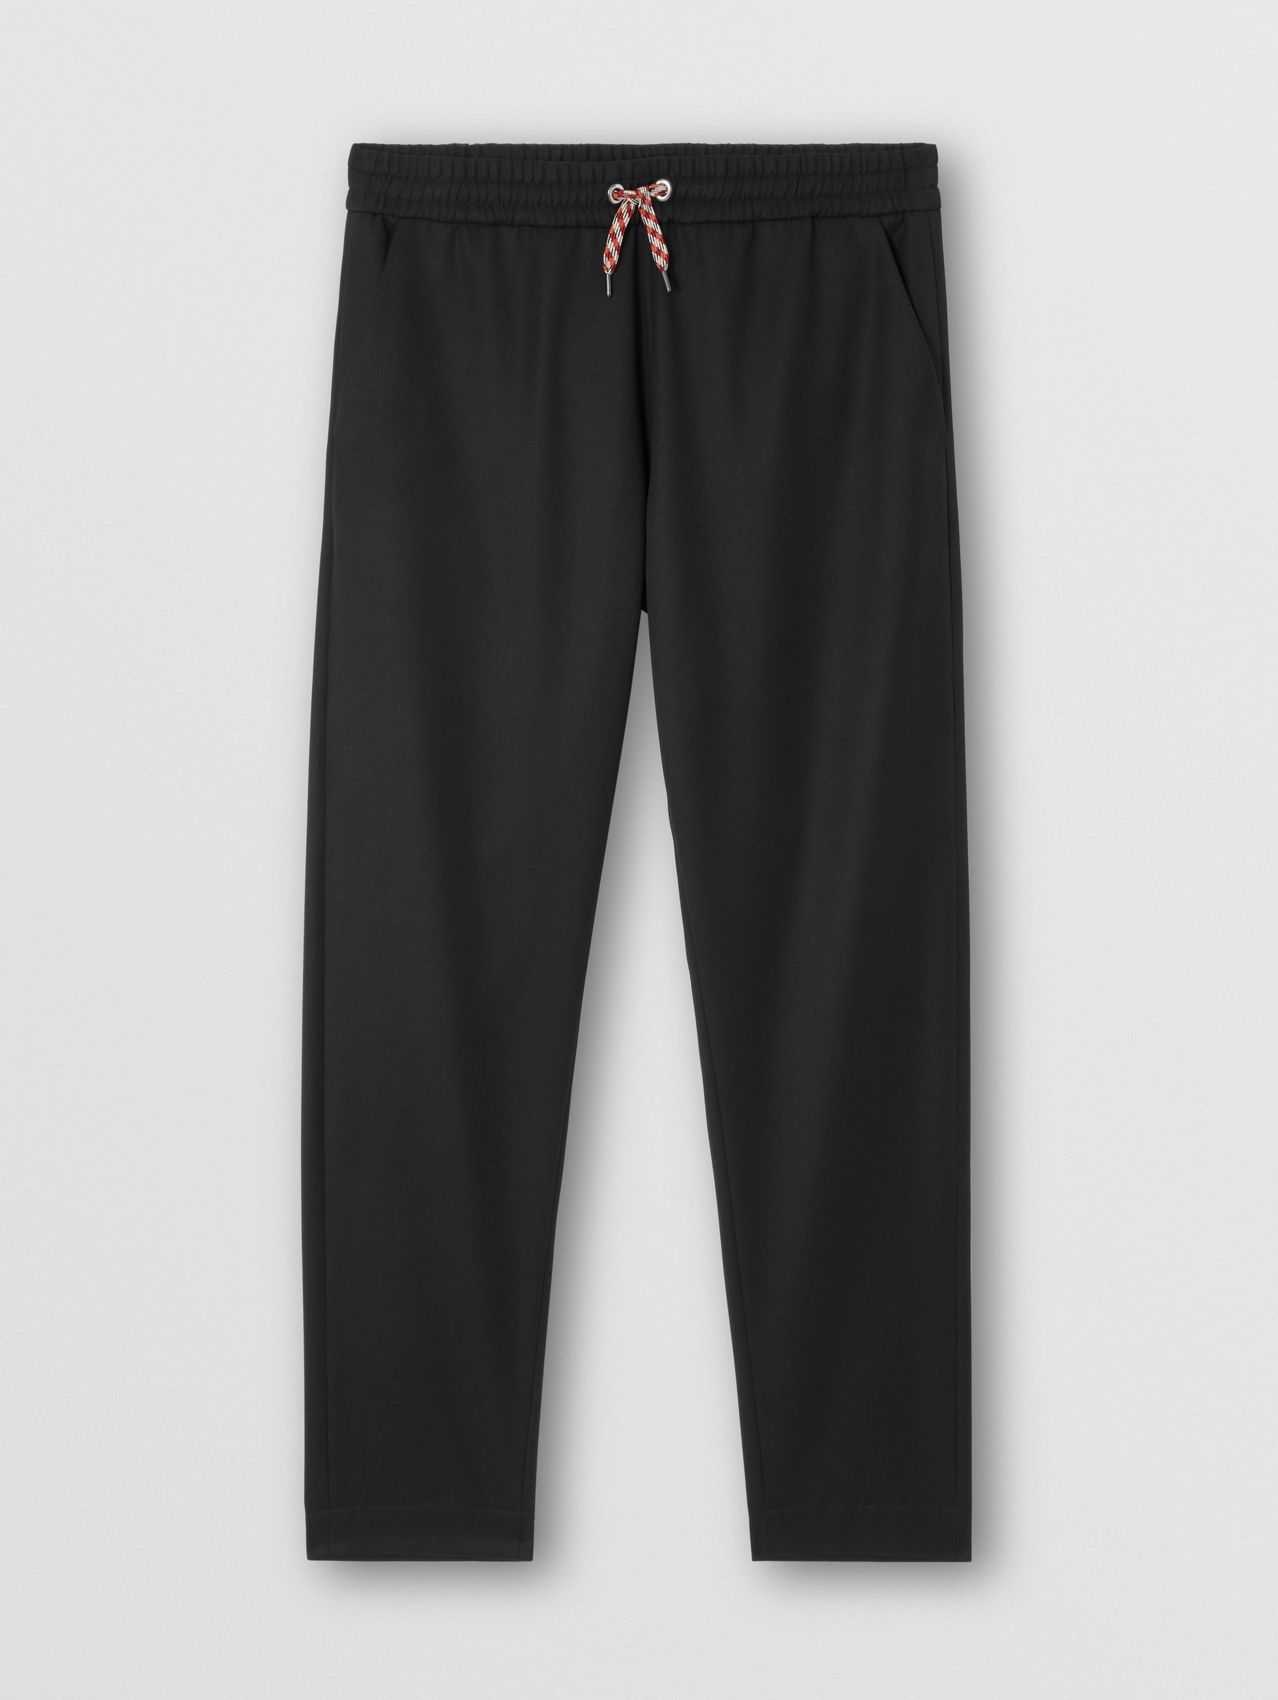 Monogram Motif Wool Jogging Pants in Black